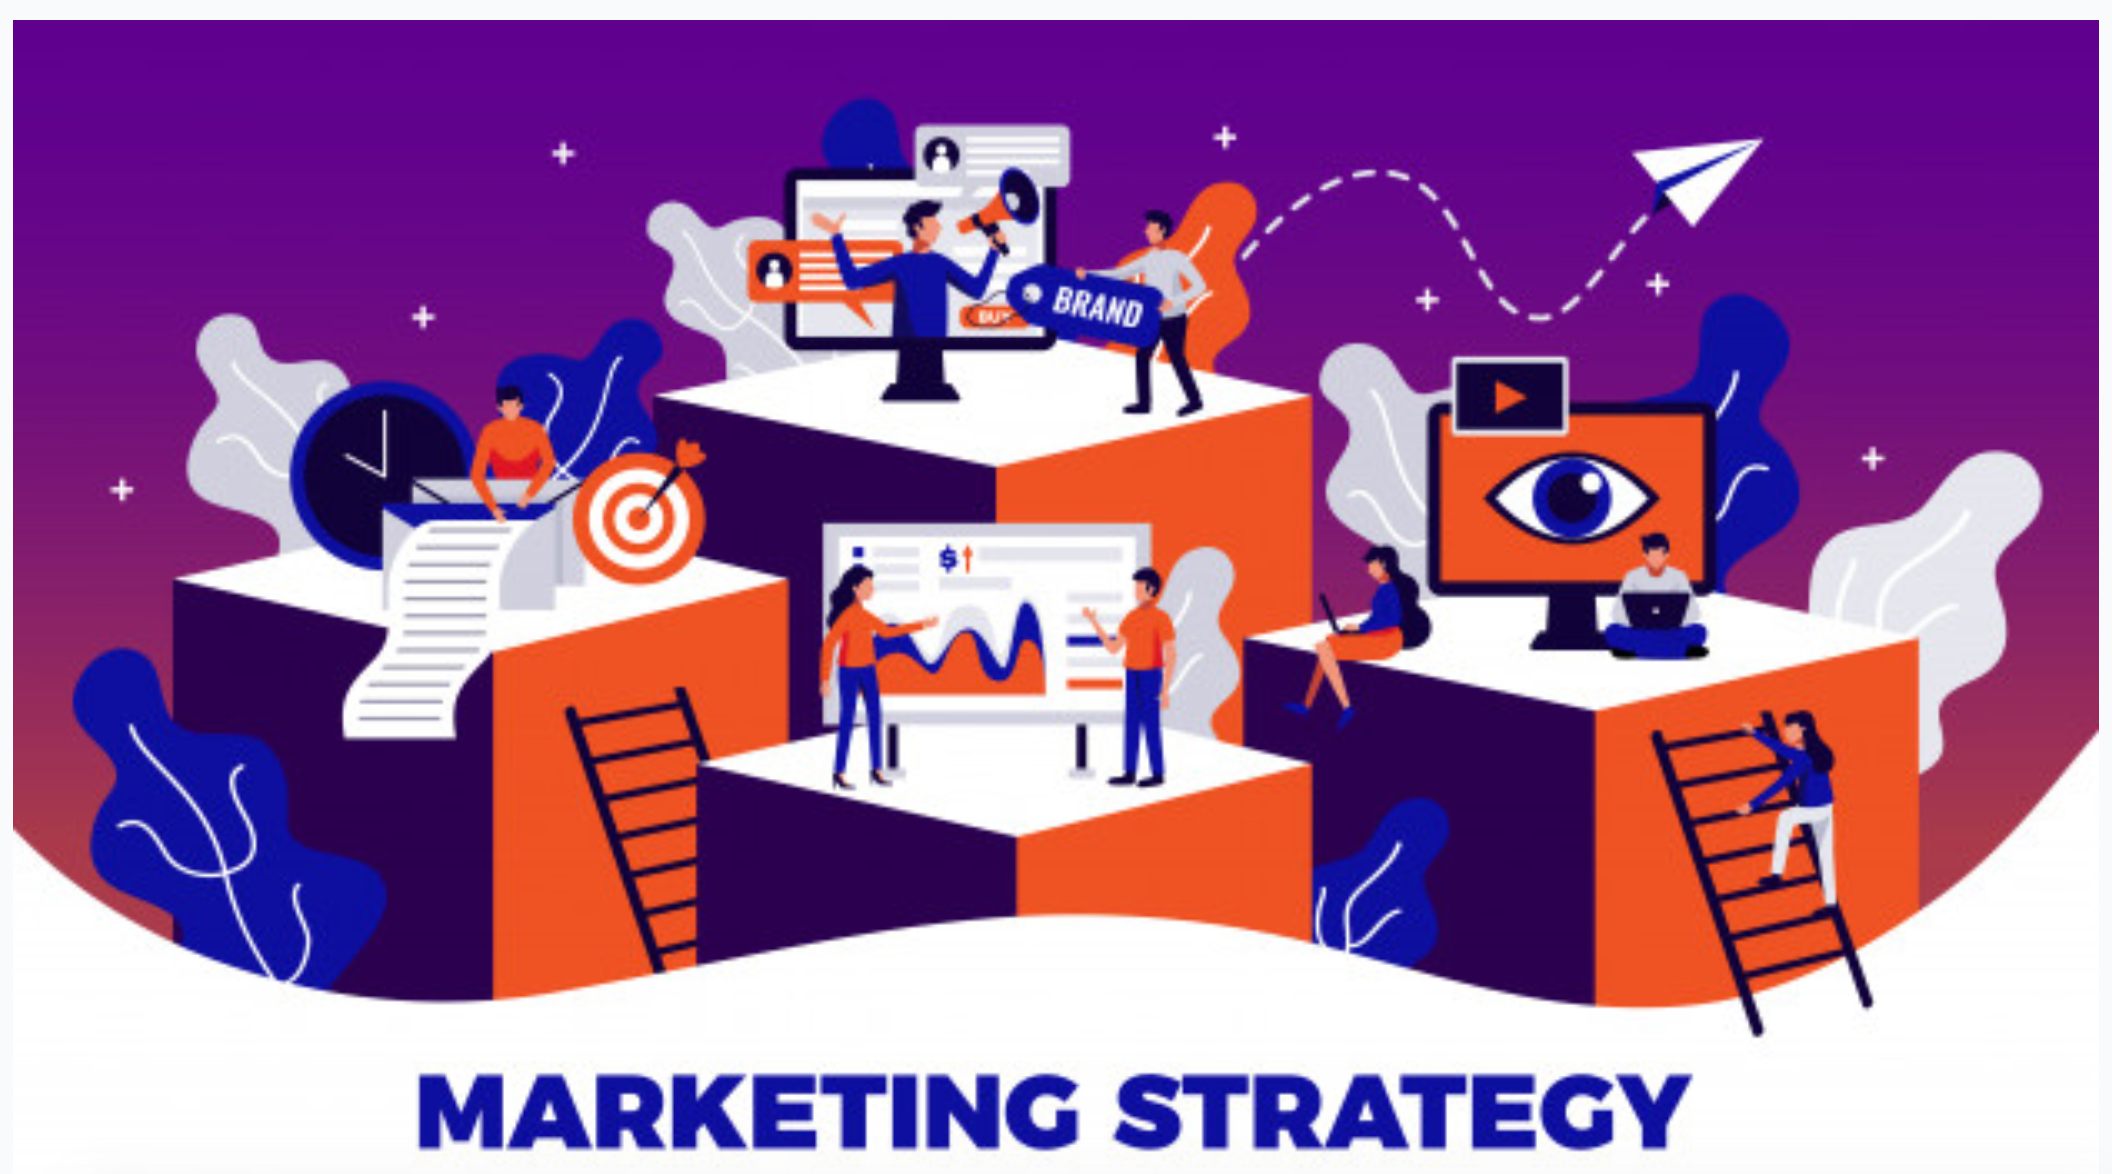 b2b marketing guide